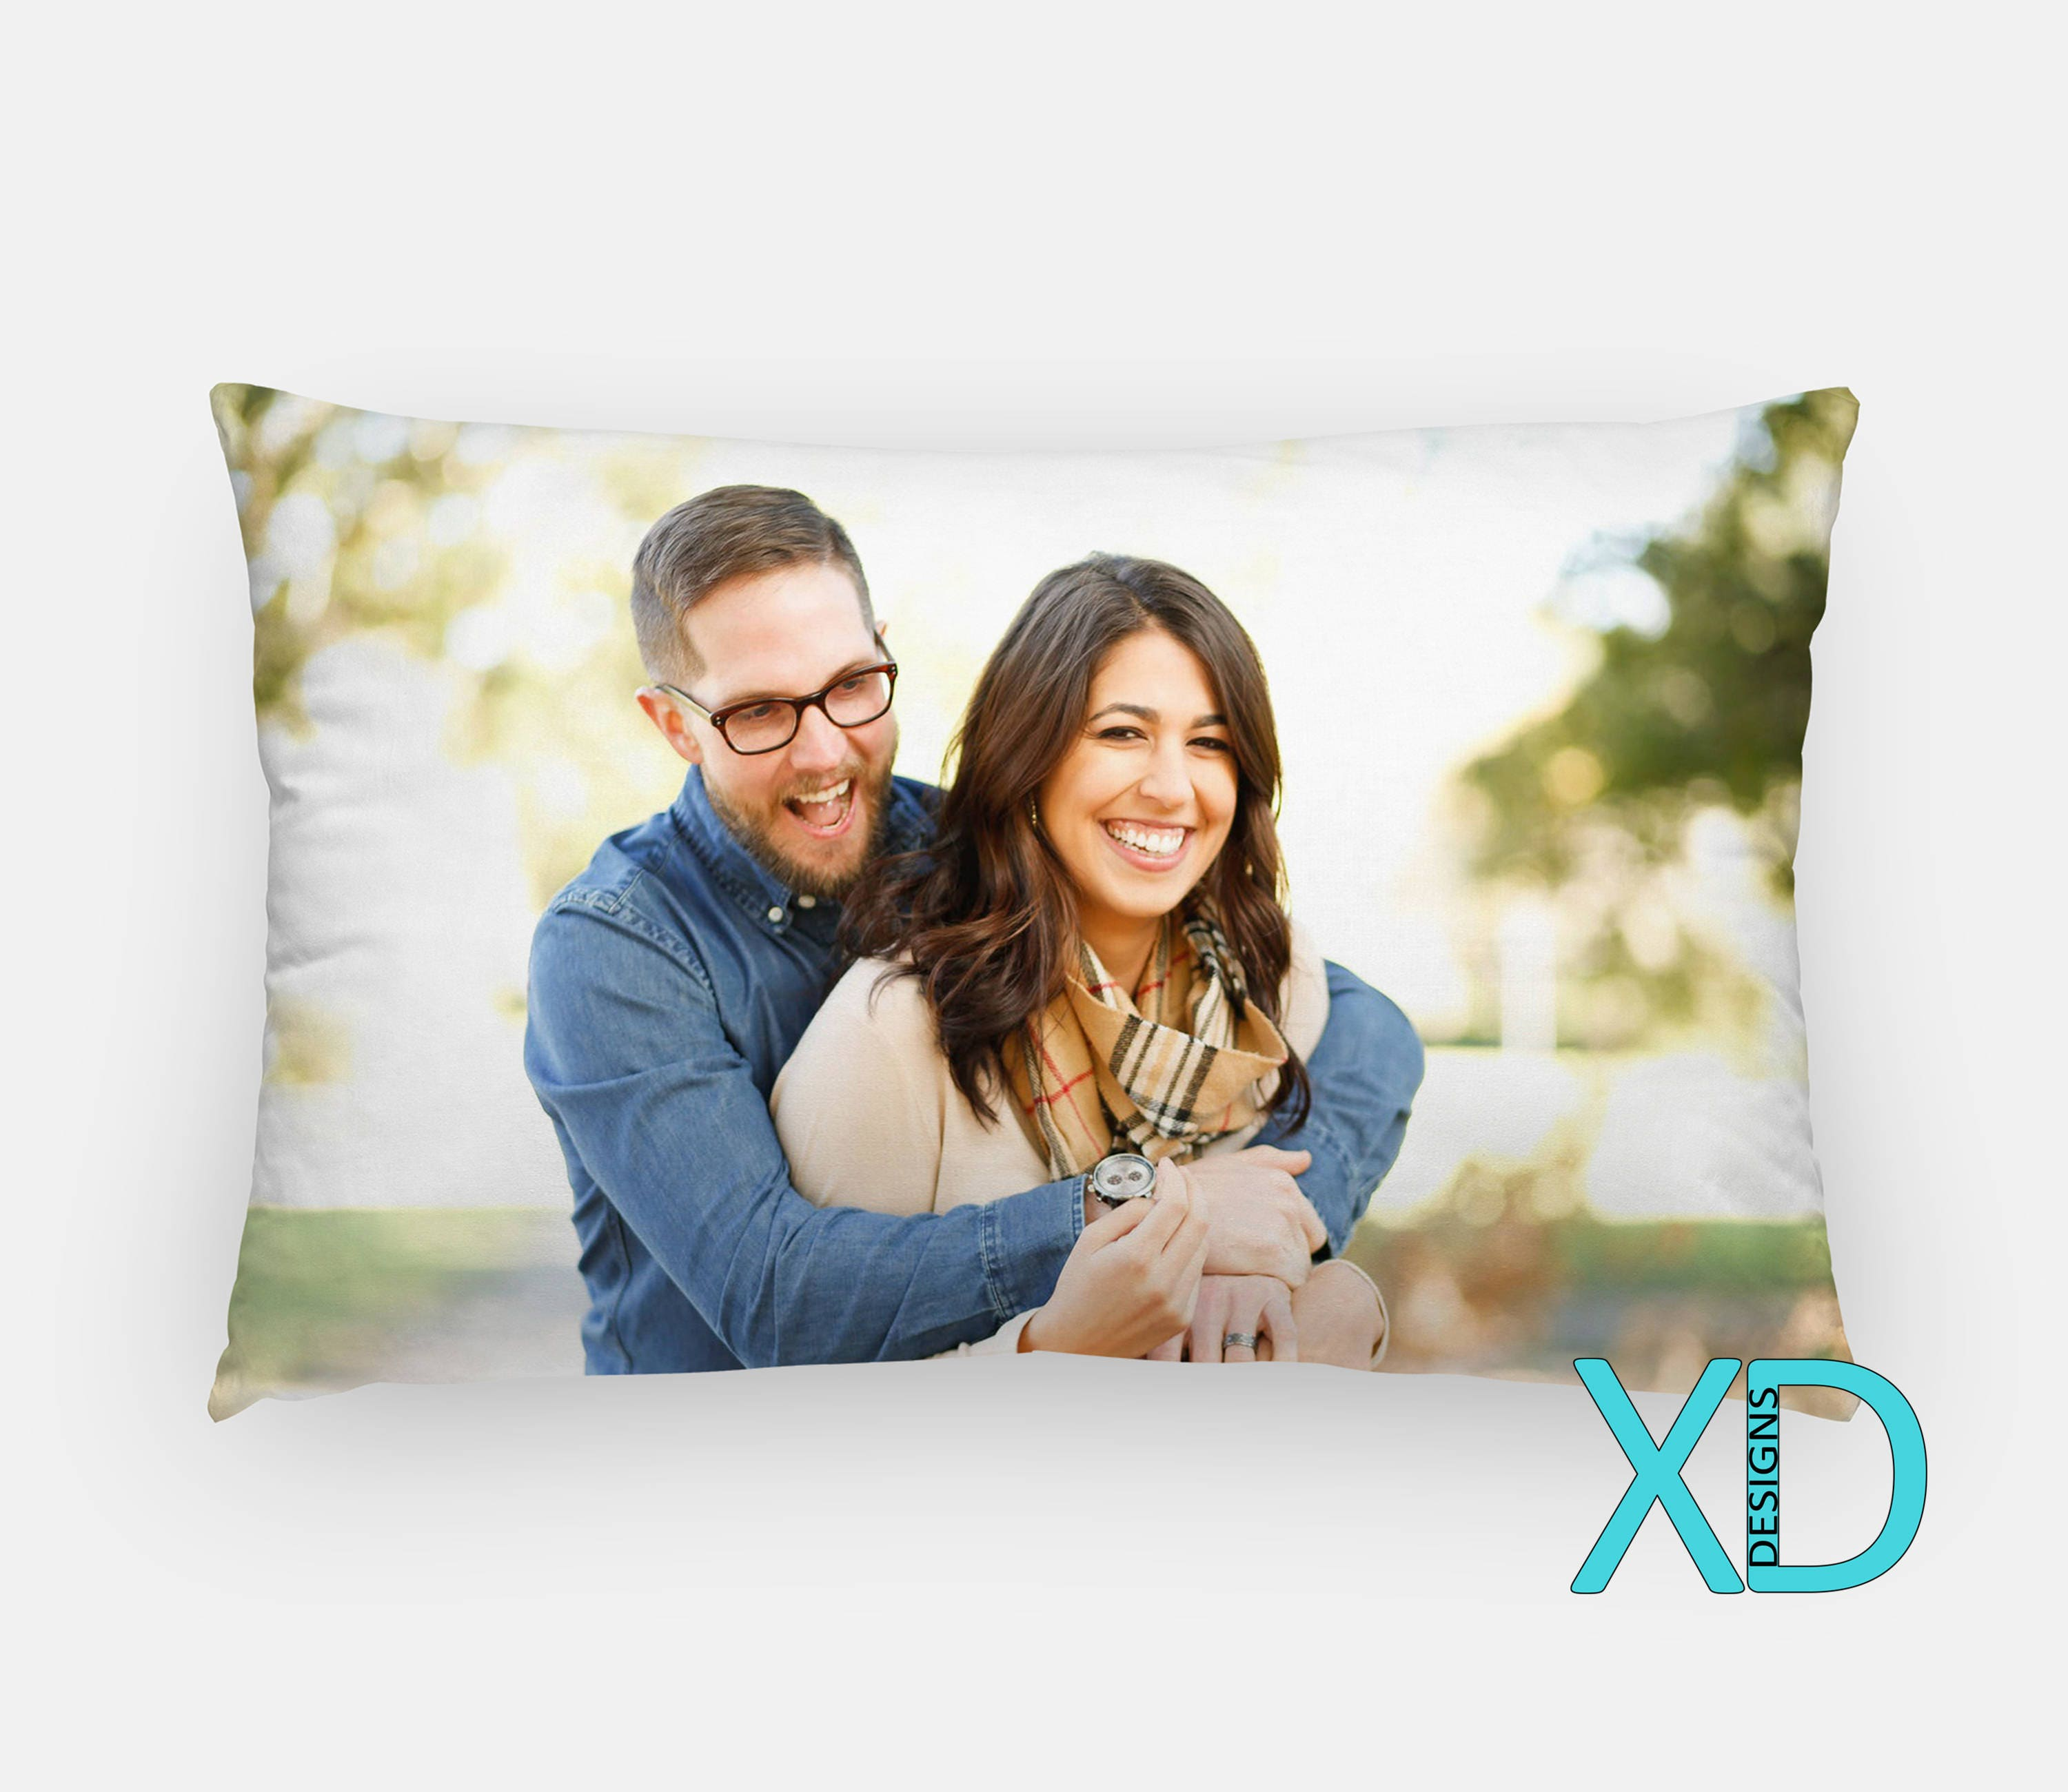 wa embroidered standard personalized pillow most is way monogram custom set this customized peachy awesome prayer with throw for along frantic make cover to that diy gift cases monogrambedding b snazzy